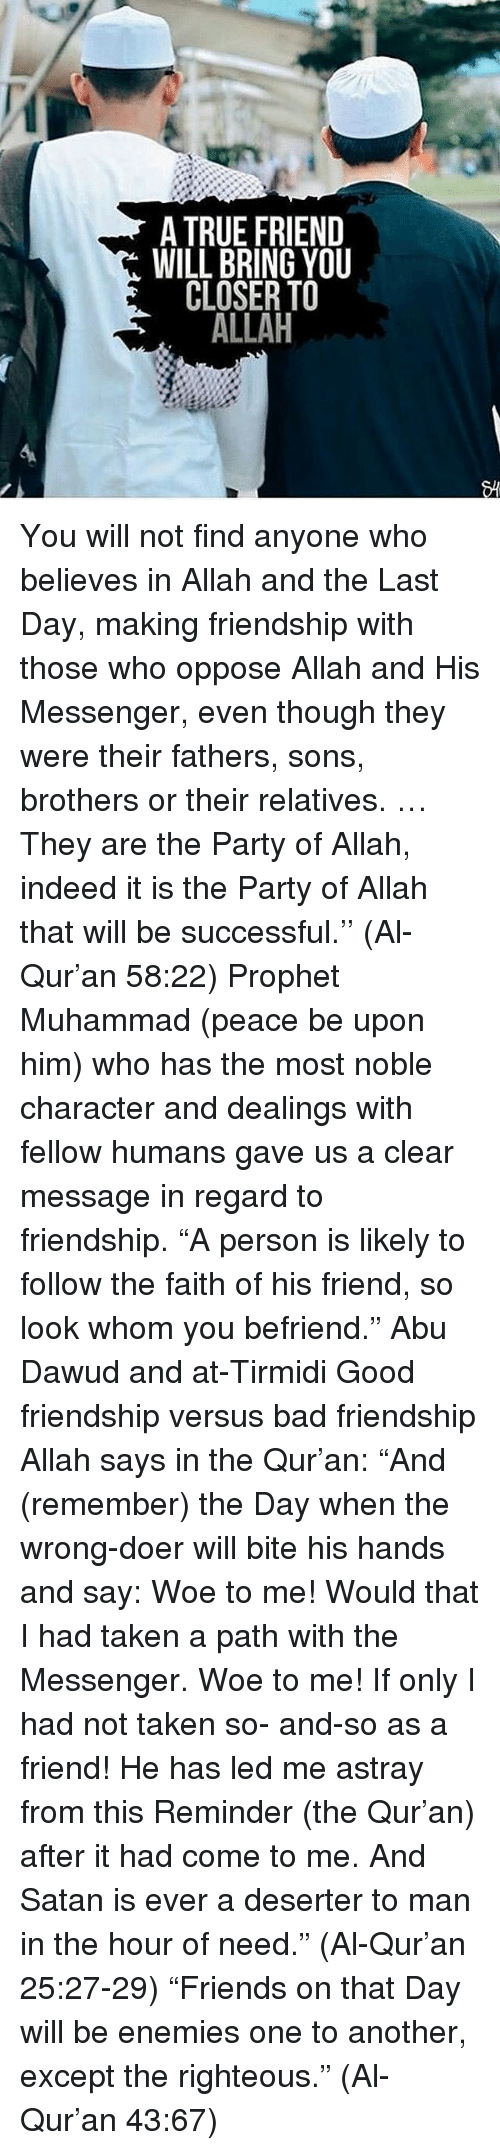 "Bad, Memes, and Party: A TRUE FRIEND  WILL BRING YOU  CLOSER TO  ALLAH You will not find anyone who believes in Allah and the Last Day, making friendship with those who oppose Allah and His Messenger, even though they were their fathers, sons, brothers or their relatives. … They are the Party of Allah, indeed it is the Party of Allah that will be successful.'' (Al-Qur'an 58:22) Prophet Muhammad (peace be upon him) who has the most noble character and dealings with fellow humans gave us a clear message in regard to friendship. ""A person is likely to follow the faith of his friend, so look whom you befriend."" Abu Dawud and at-Tirmidi Good friendship versus bad friendship Allah says in the Qur'an: ""And (remember) the Day when the wrong-doer will bite his hands and say: Woe to me! Would that I had taken a path with the Messenger. Woe to me! If only I had not taken so- and-so as a friend! He has led me astray from this Reminder (the Qur'an) after it had come to me. And Satan is ever a deserter to man in the hour of need."" (Al-Qur'an 25:27-29) ""Friends on that Day will be enemies one to another, except the righteous."" (Al-Qur'an 43:67)"